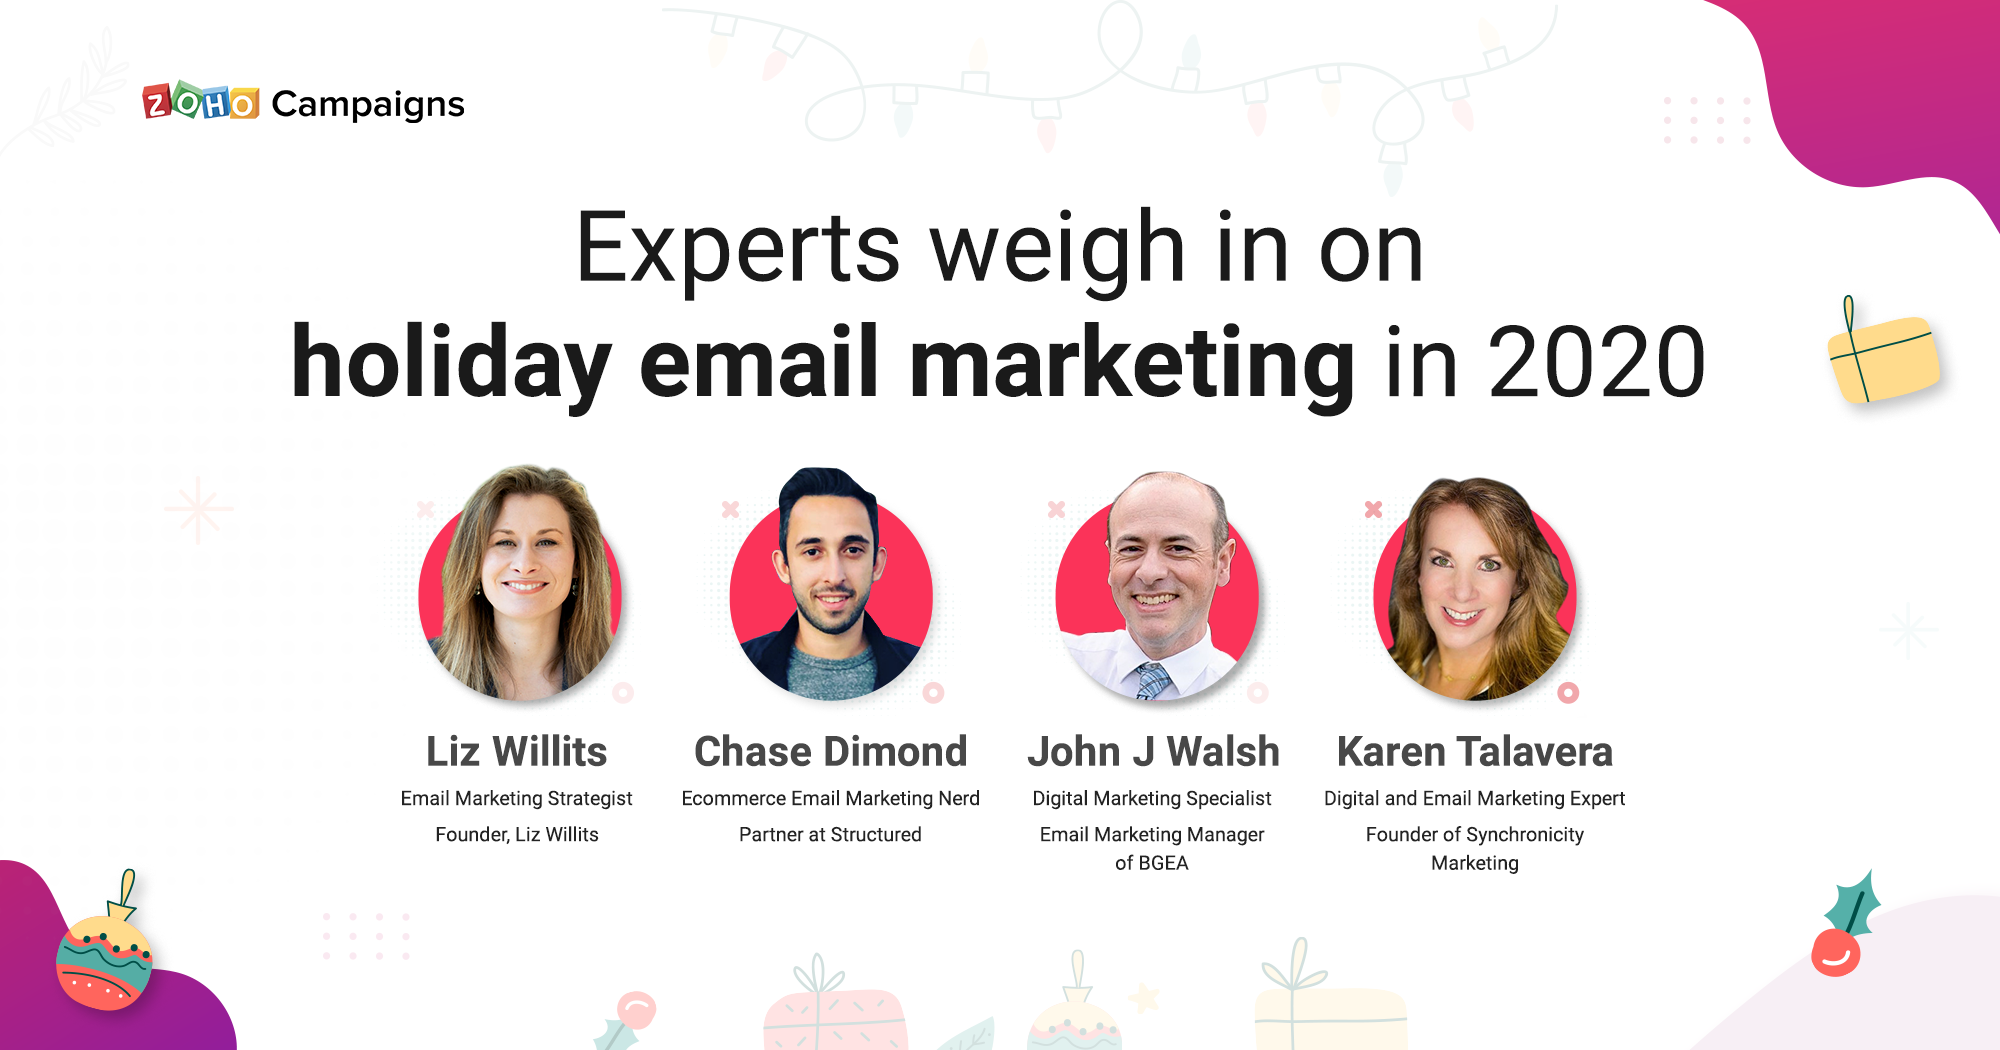 Experts weigh in on holiday email marketing in 2020